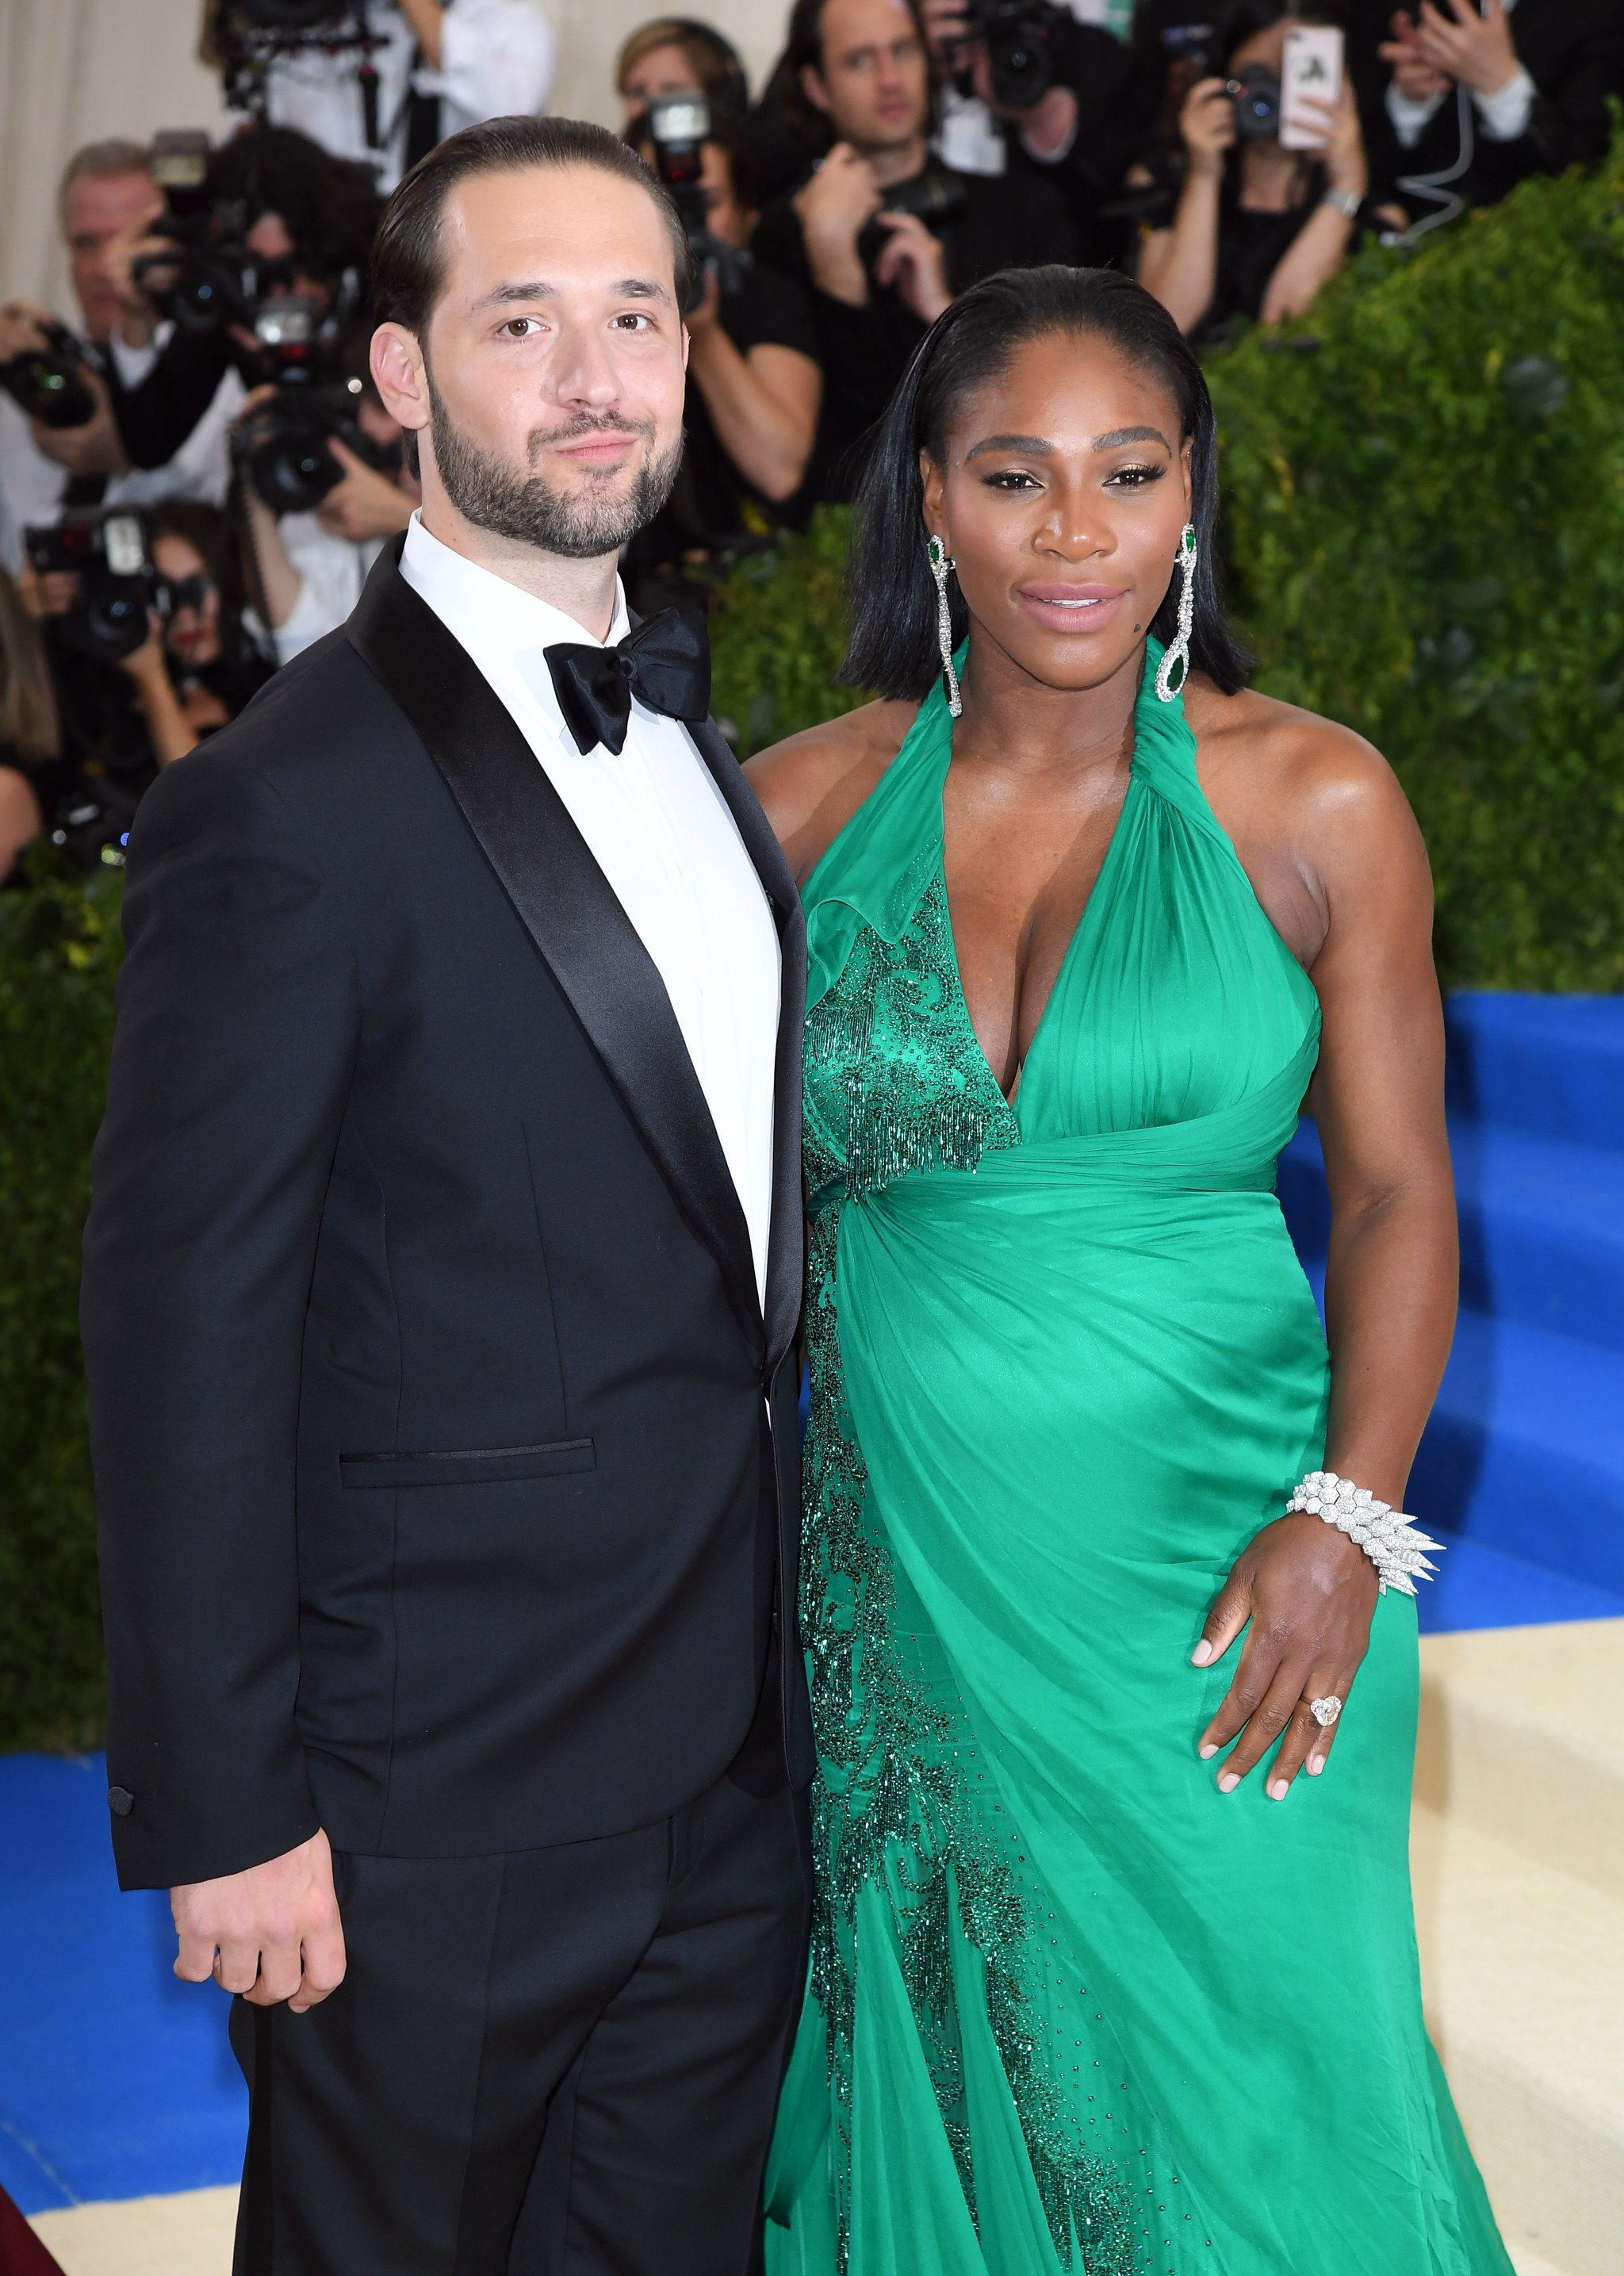 Alexis Ohanian gushes about Serena Williams,